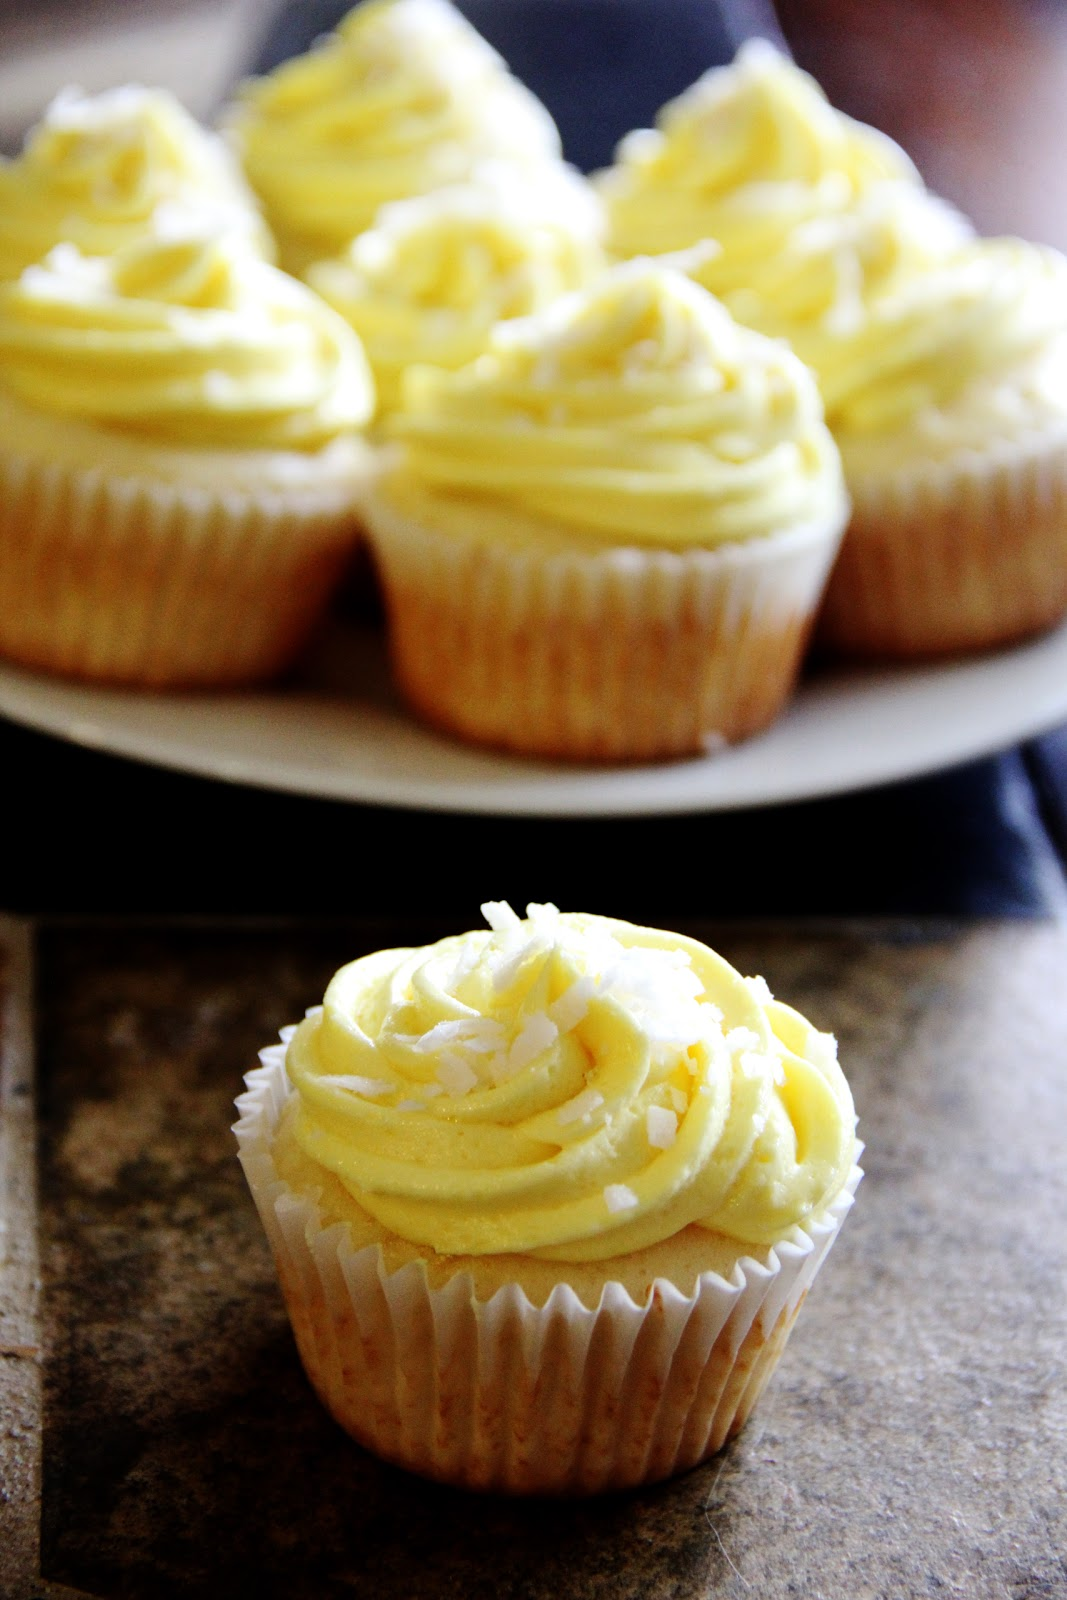 Frosted: Pina Colada Cupcakes with Coconut Buttercream Frosting